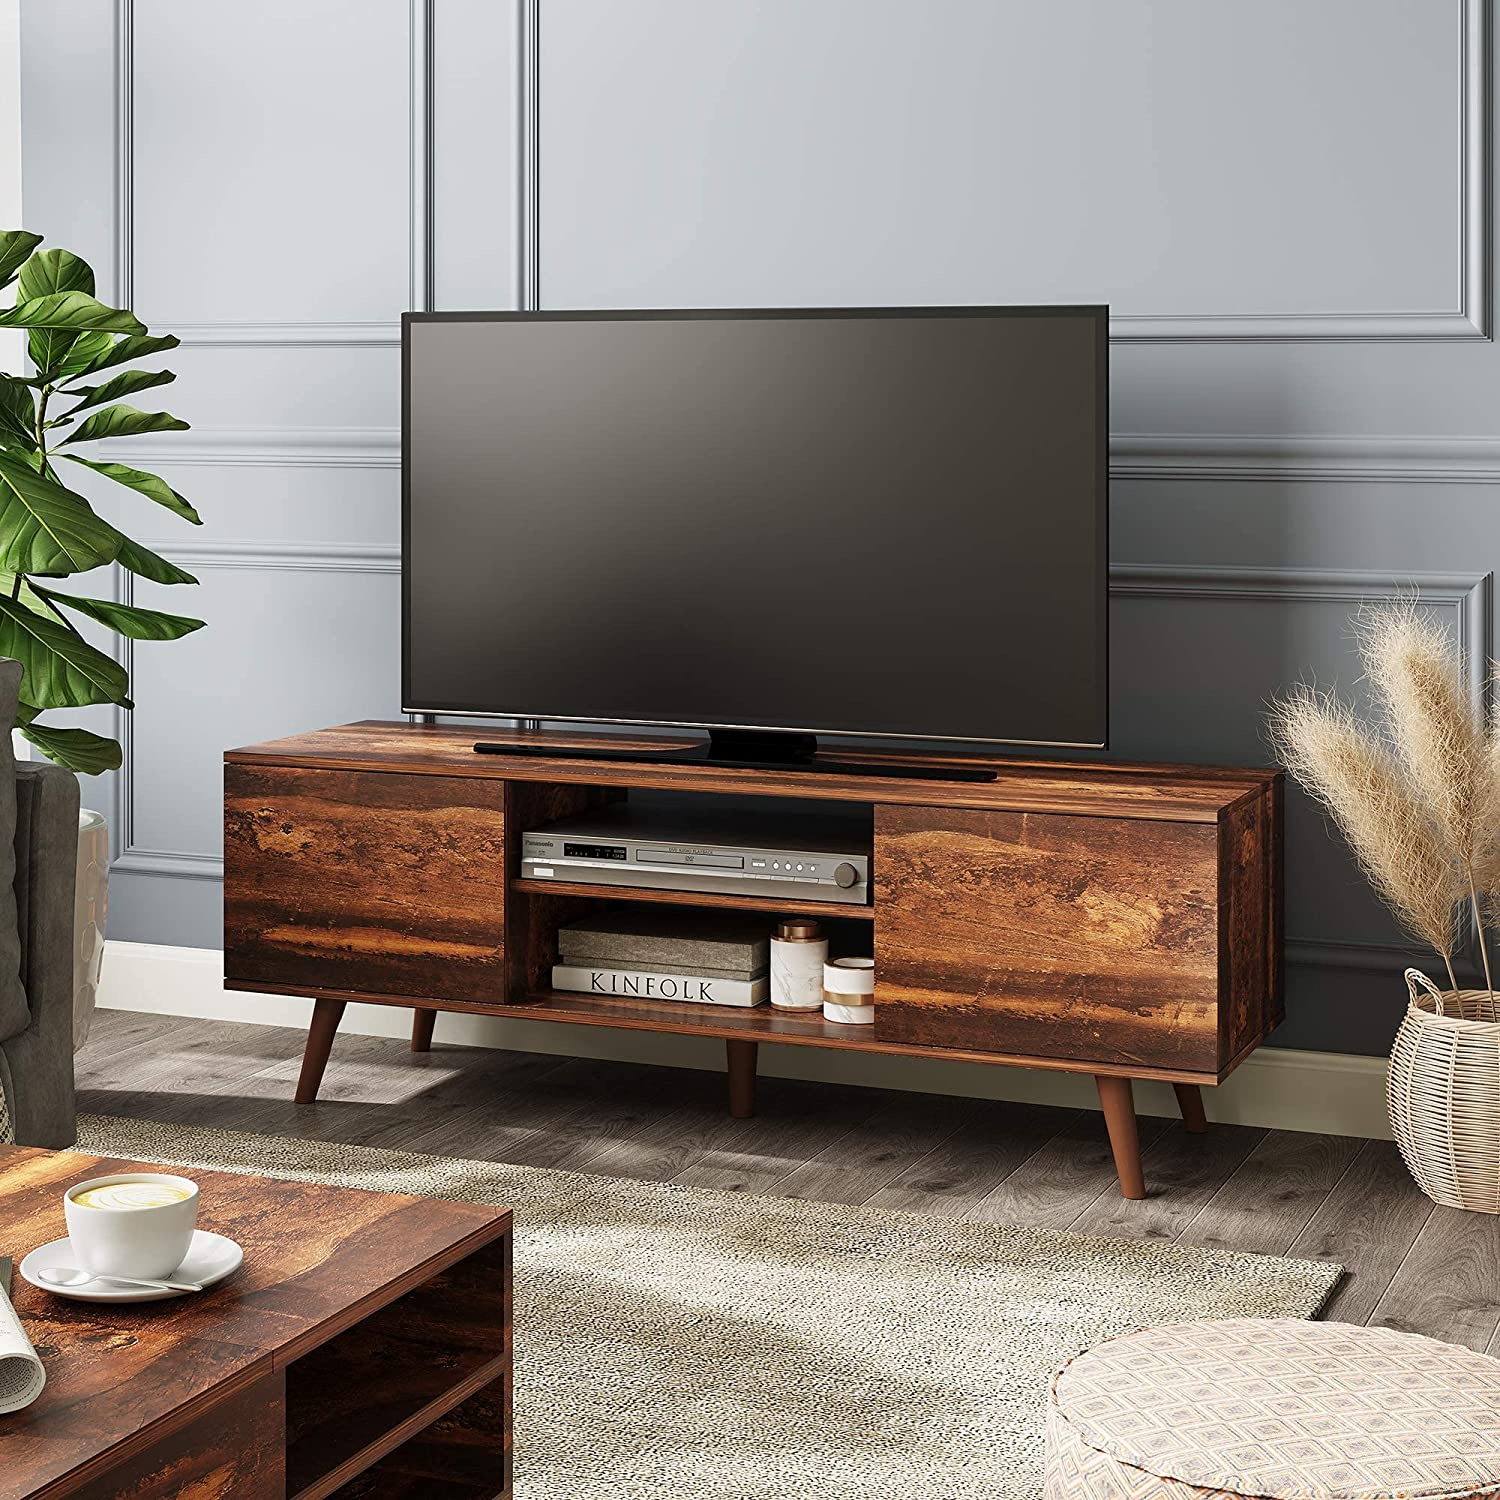 WLIVE Mid-Century Modern TV Stand for 55/60 inch TV, Media Console, Entertainment Center with Storage Cabinet for Living Room, Rustic Brown: Furniture & Decor